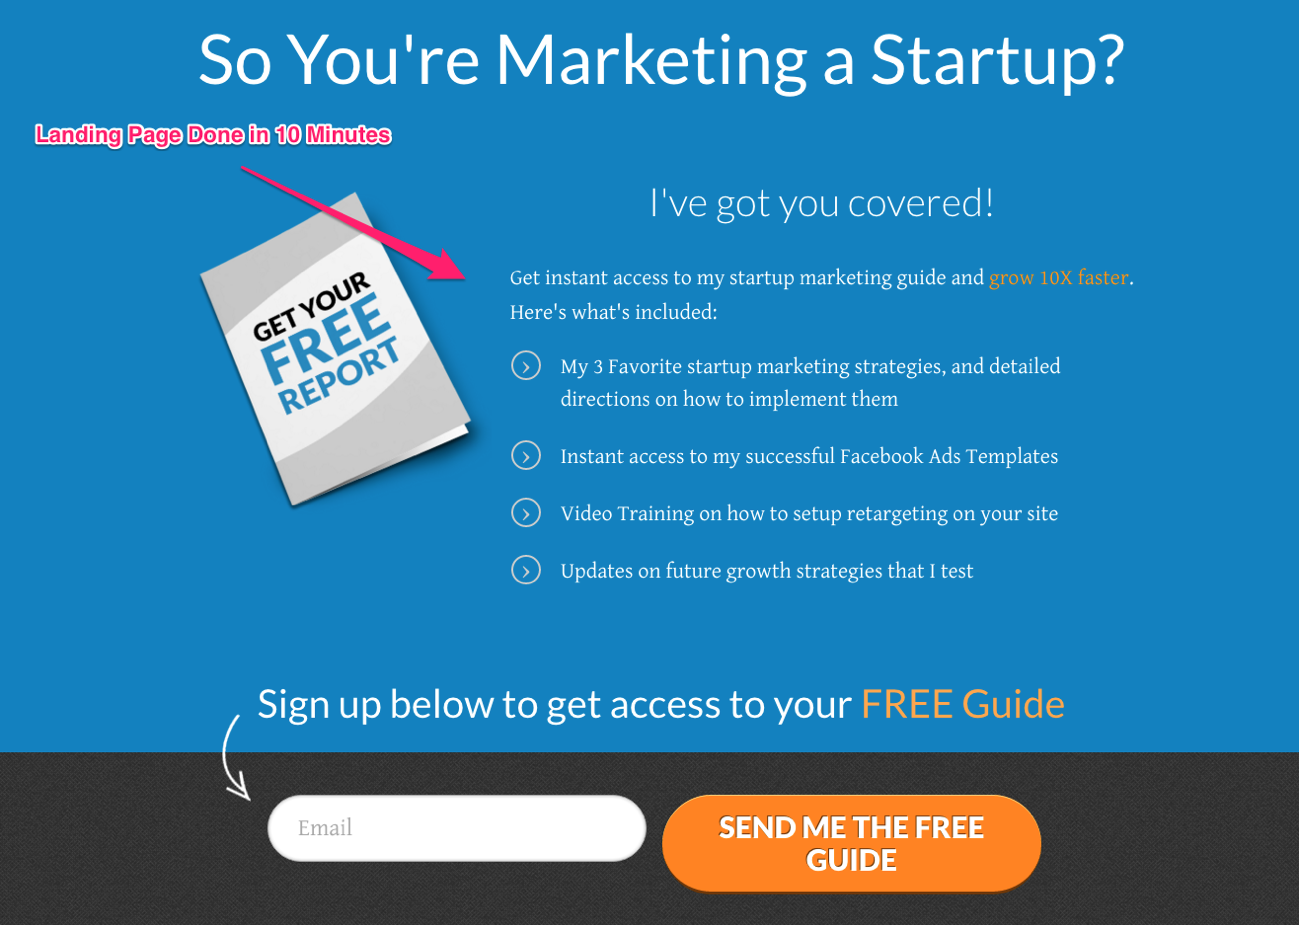 10 minute landing page